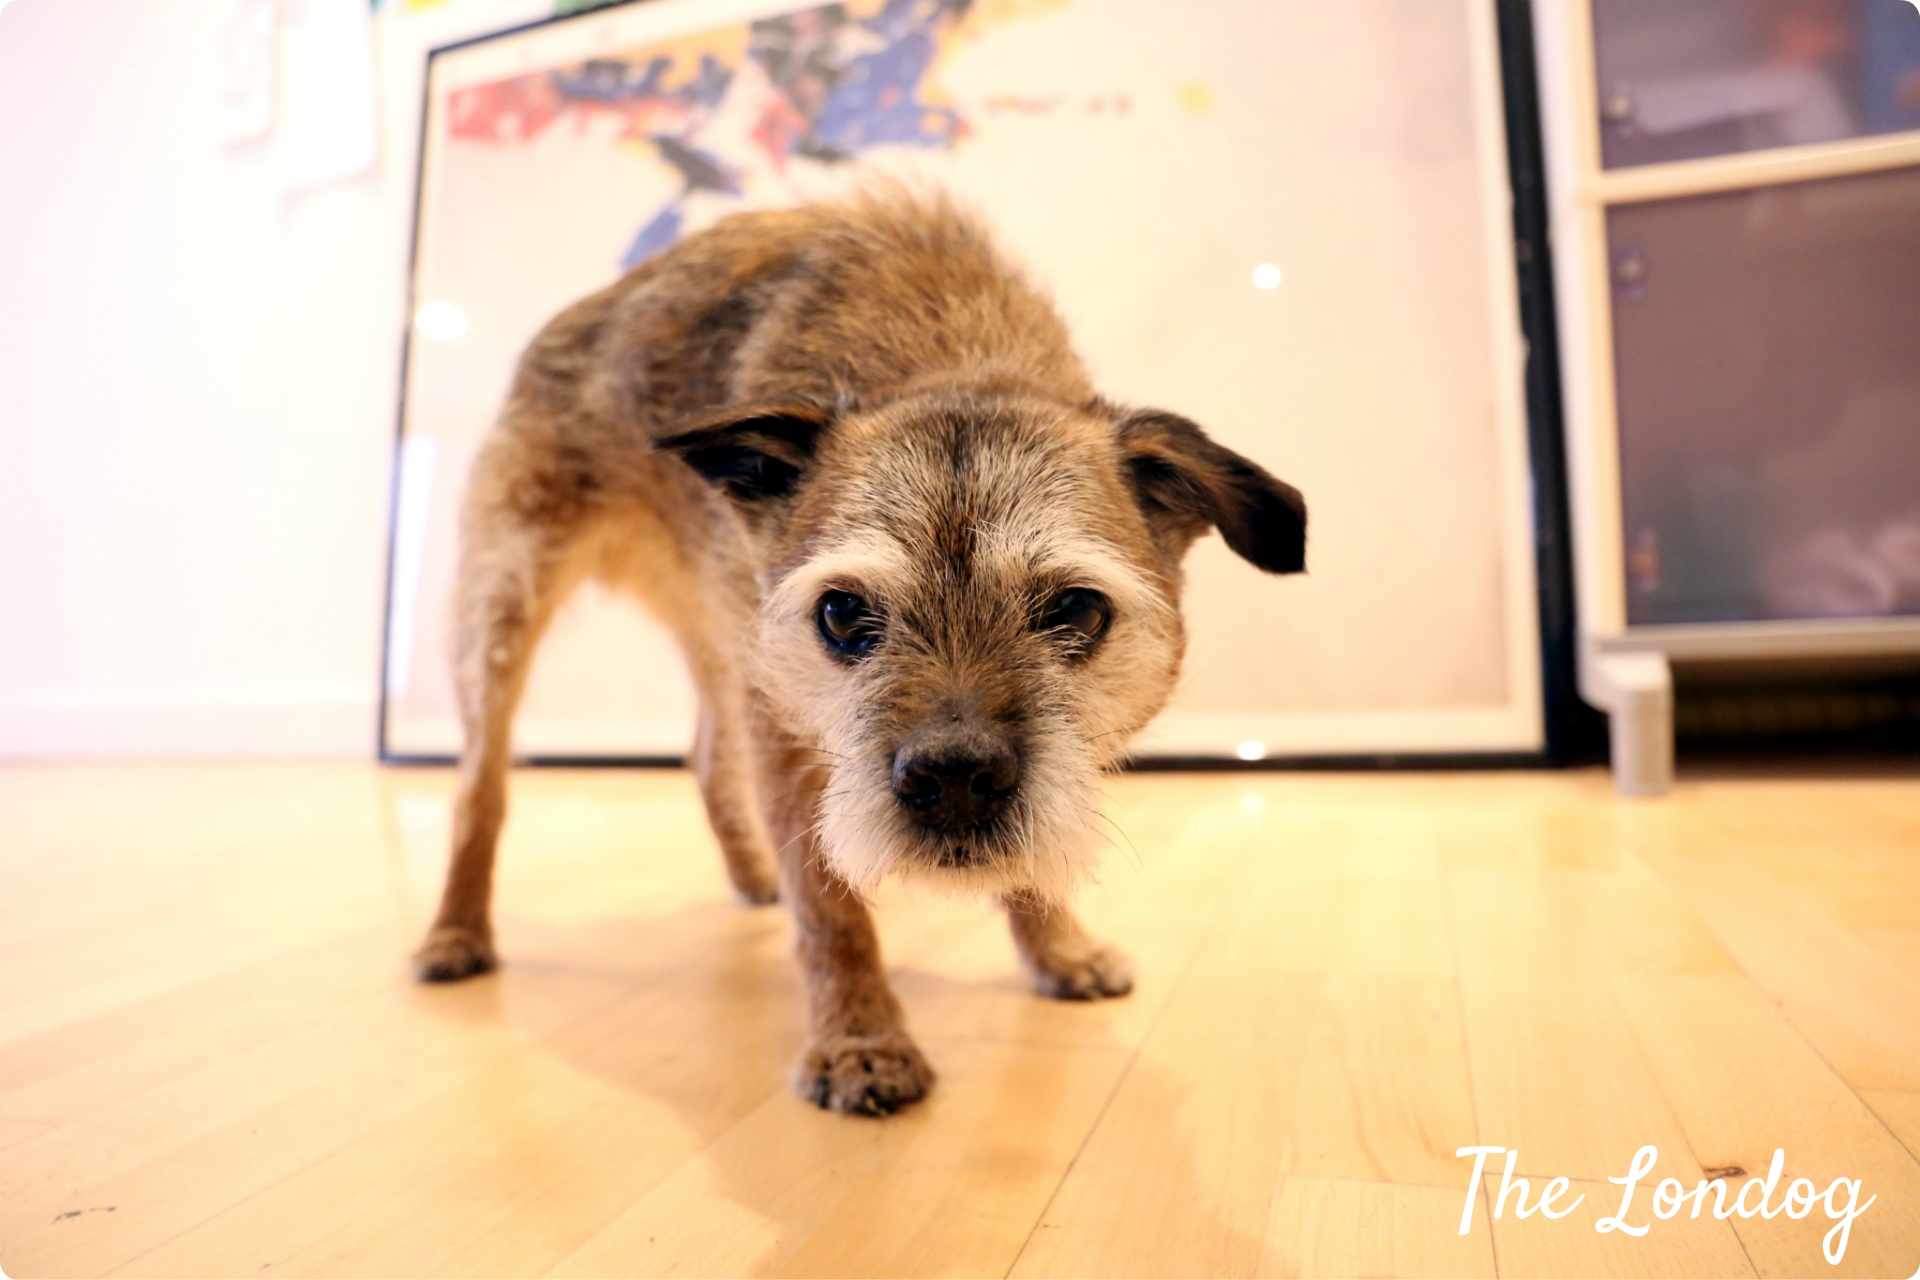 Otto the border terrier office dog looks at the camera while at Crocodile office